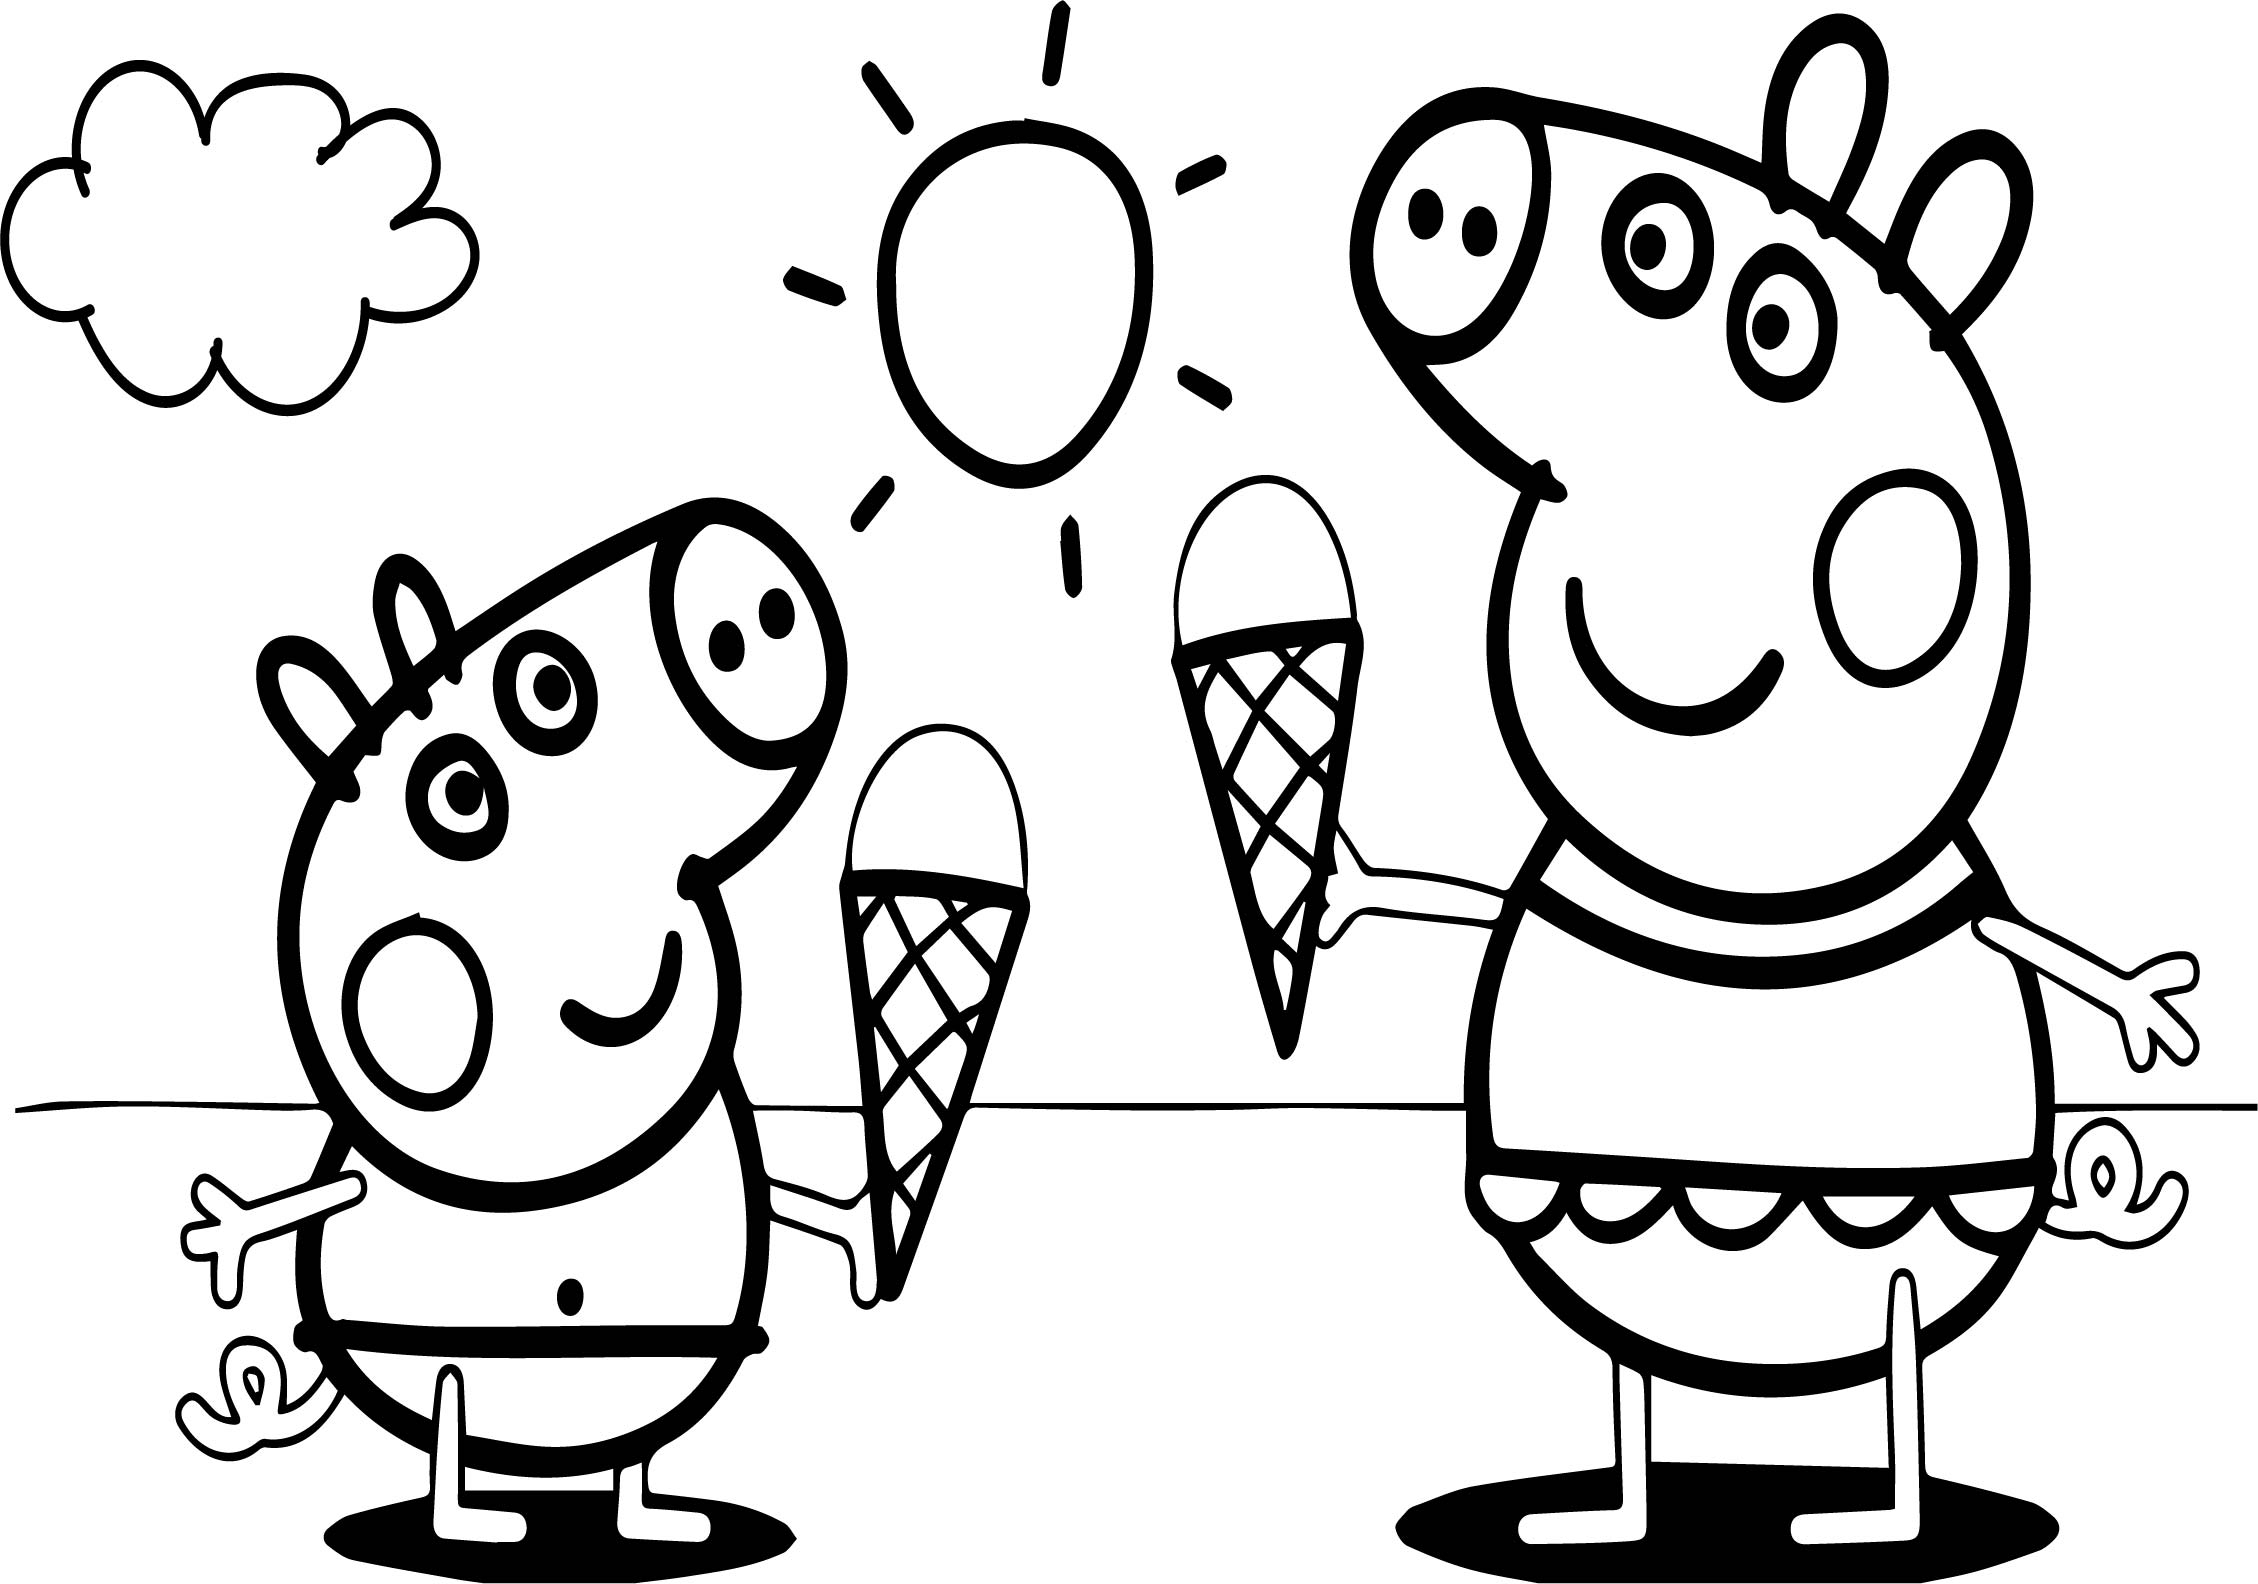 coloring pictures of pigs funny creature 26 pig coloring pages for kids print pictures pigs coloring of